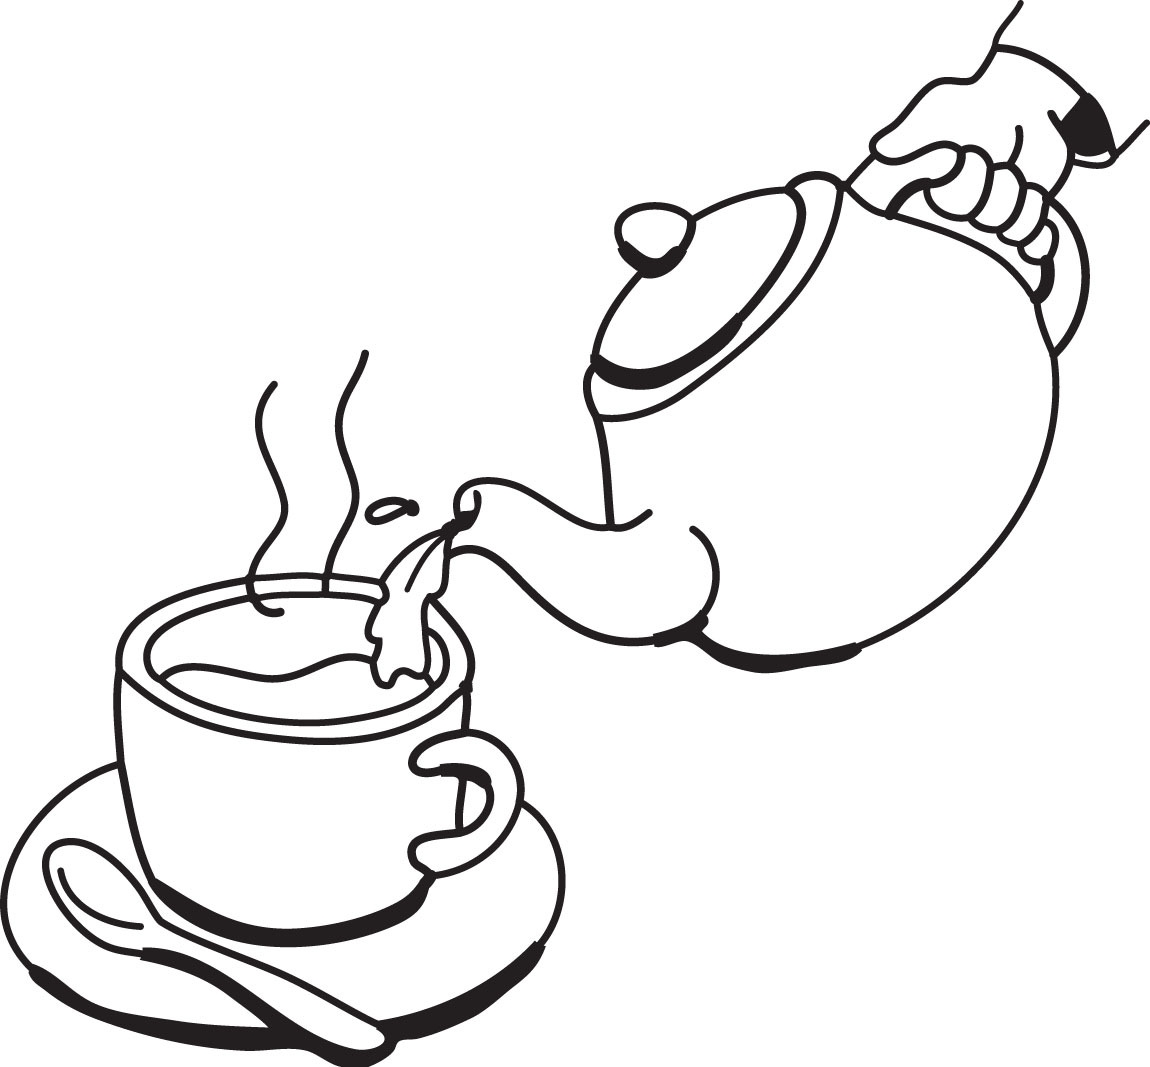 Man pouring clipart black and white free stock Teapot Black And White | Free download best Teapot Black And White ... free stock